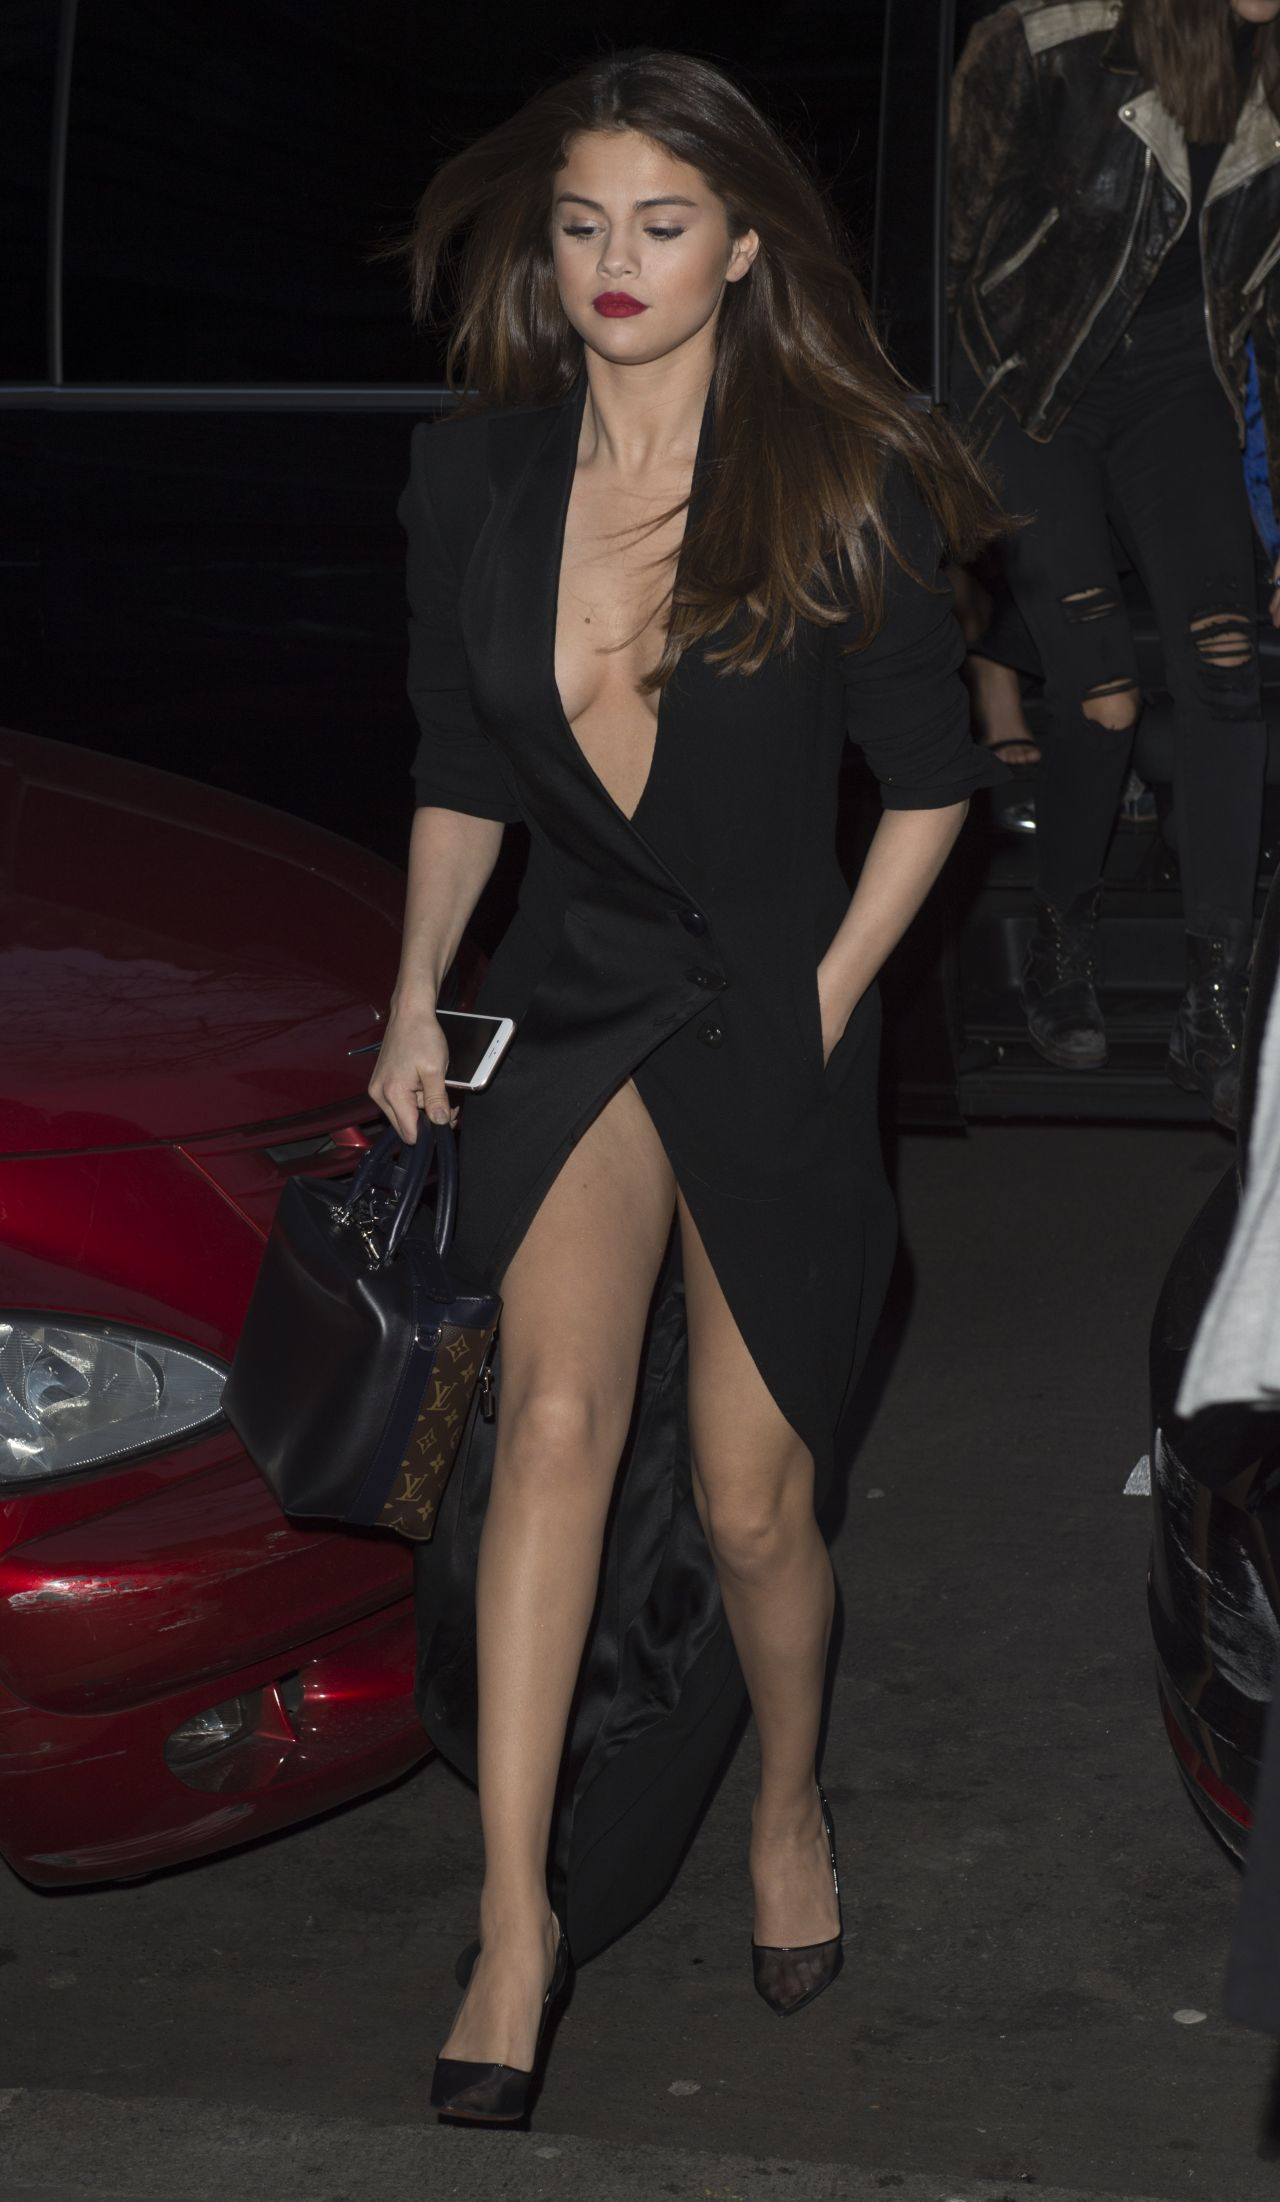 selena gomez night out style leaving hotel in paris 3 8 2016. Black Bedroom Furniture Sets. Home Design Ideas